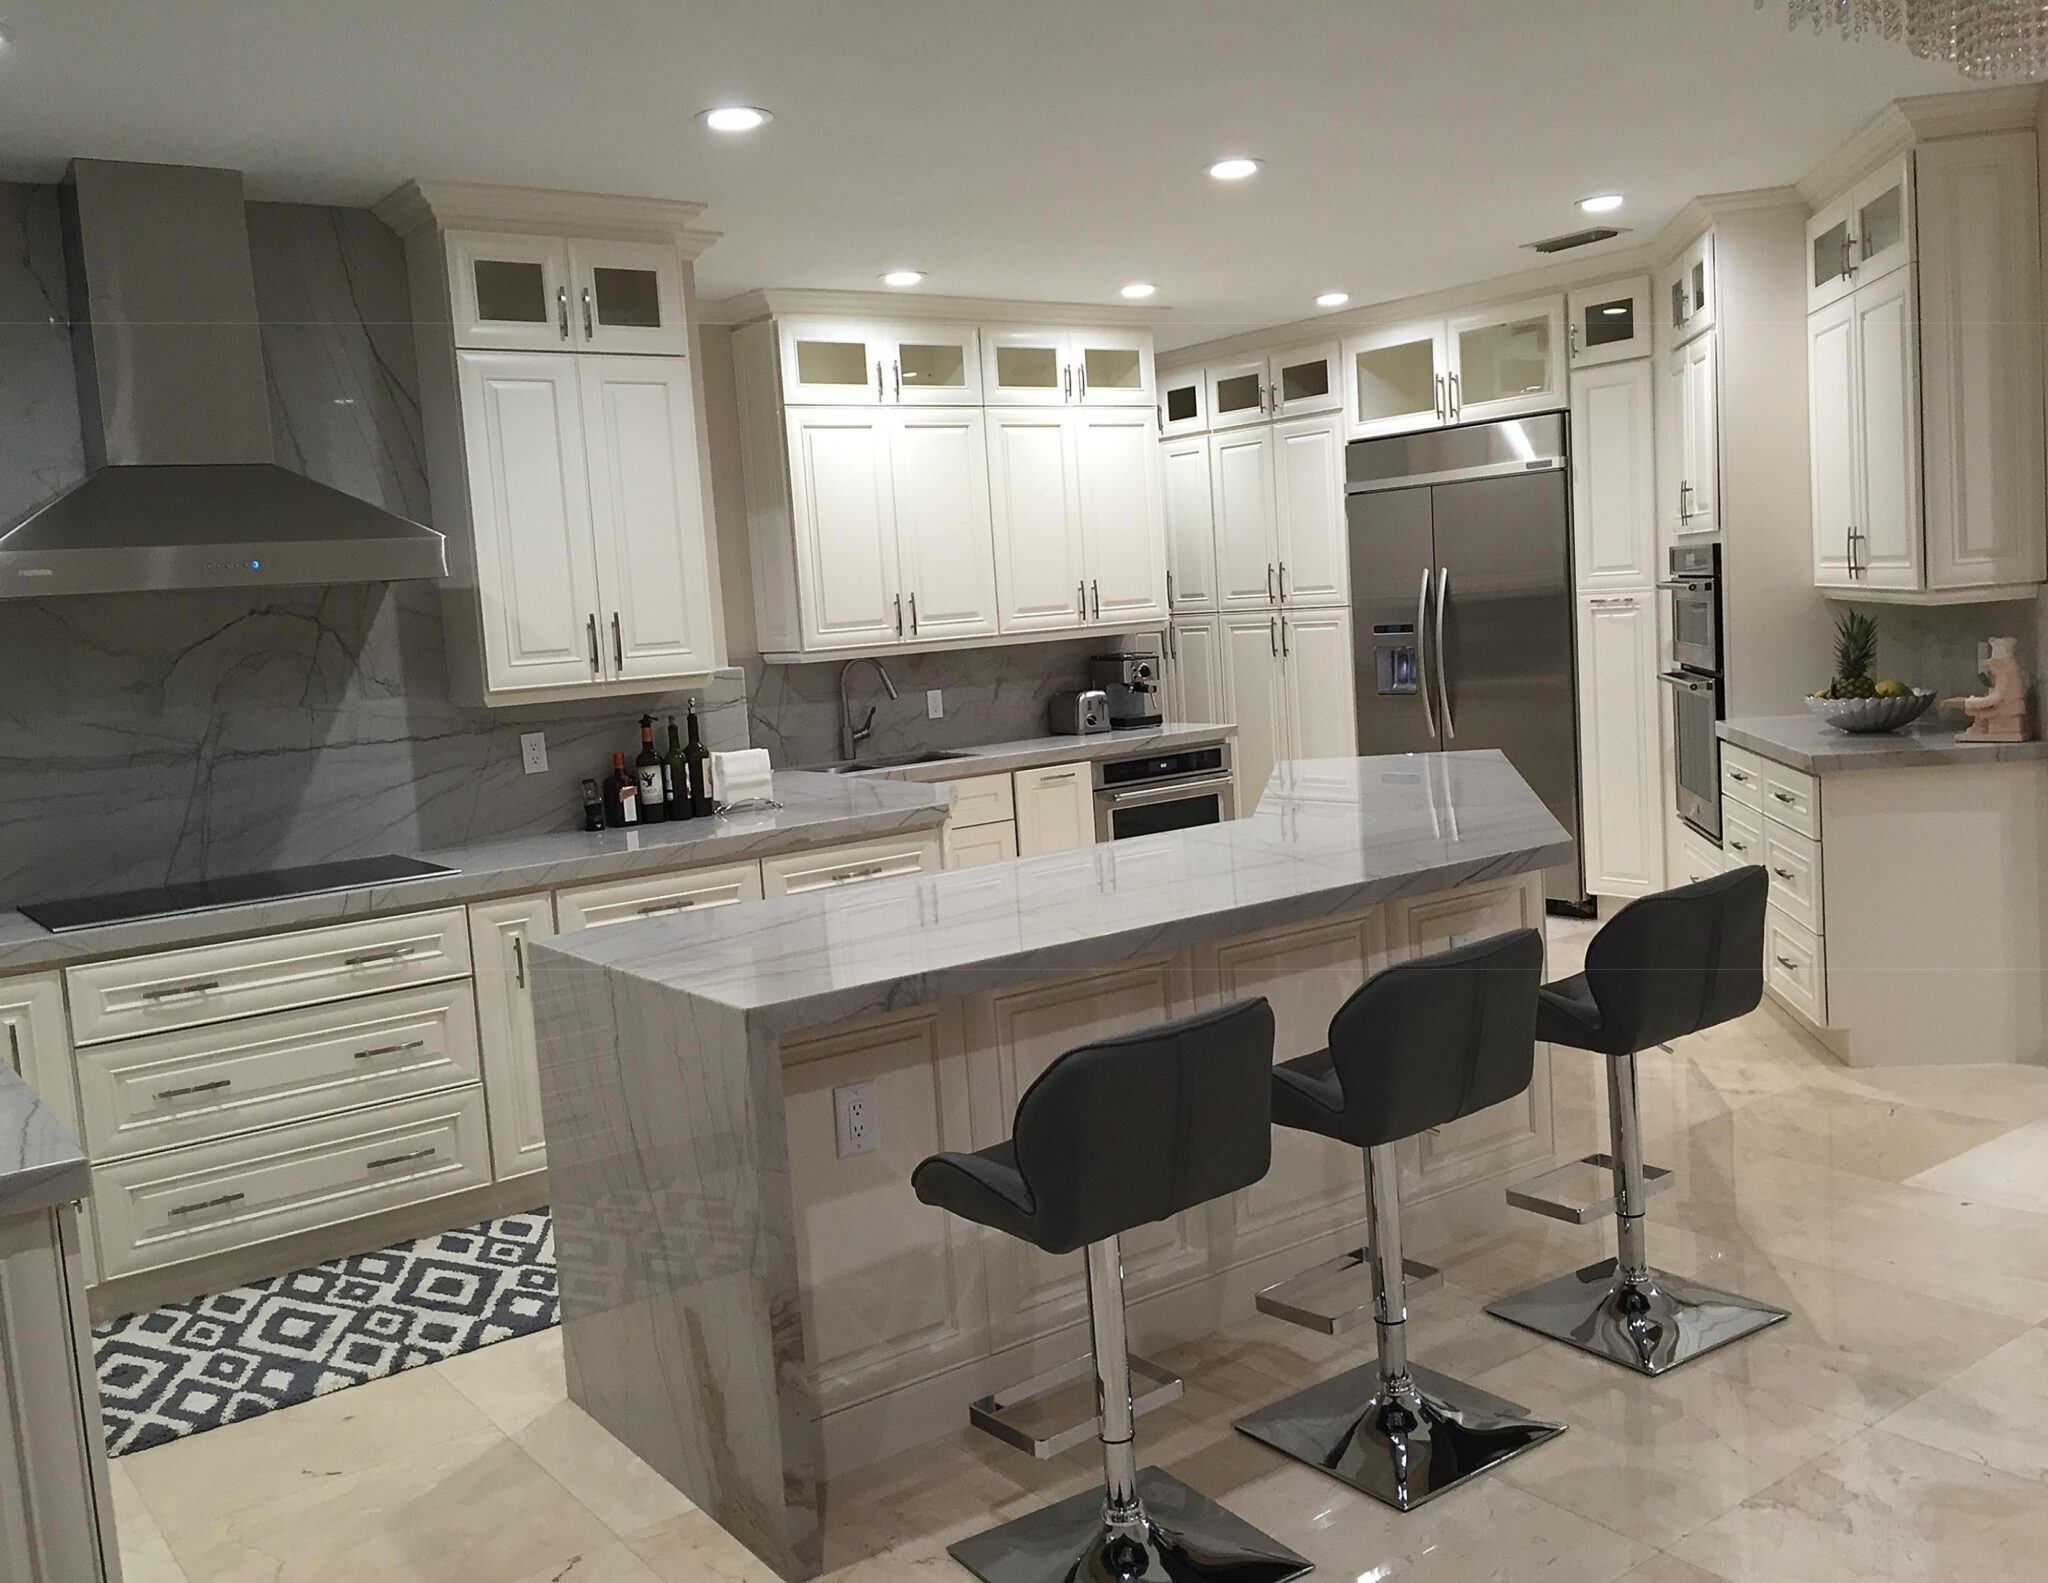 Raised | kitchensbyus.com on kitchens without top cabinets, raising kitchen cabnet, raising kitchen counter, raising kitchen ceiling,